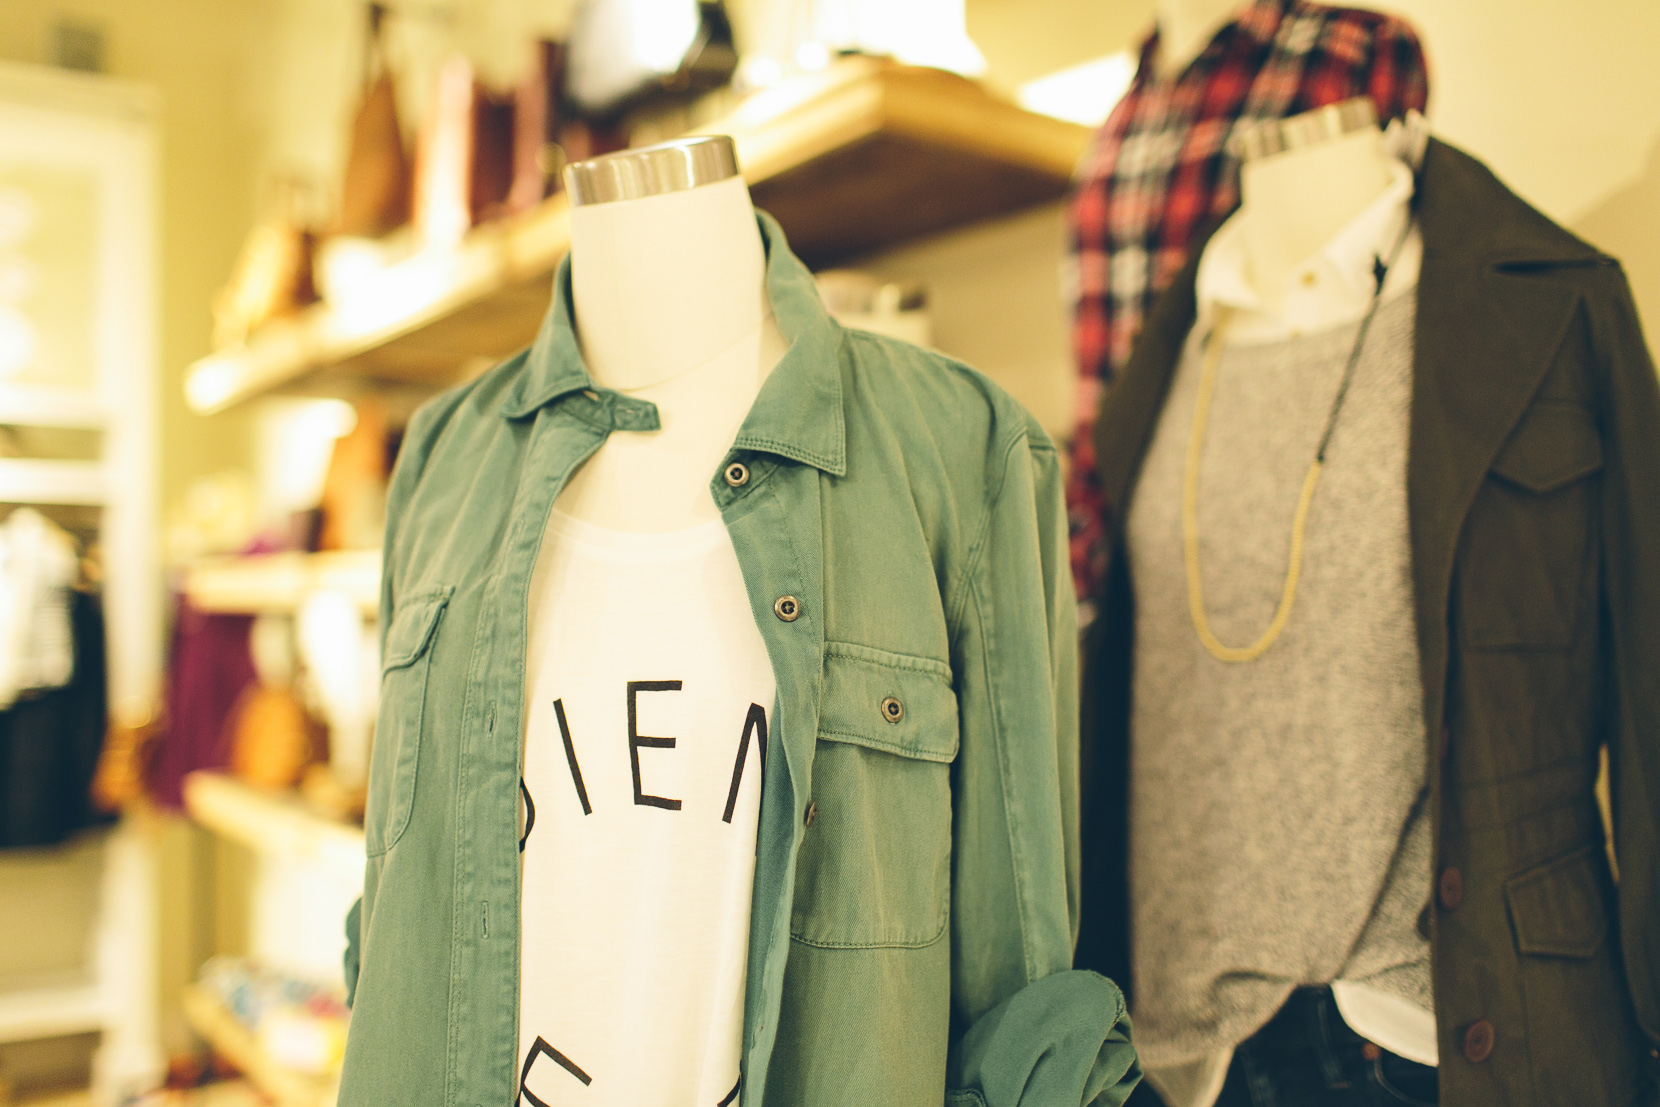 Madewell Ann Arbor Grand Opening Party  |  The Fresh Exchange